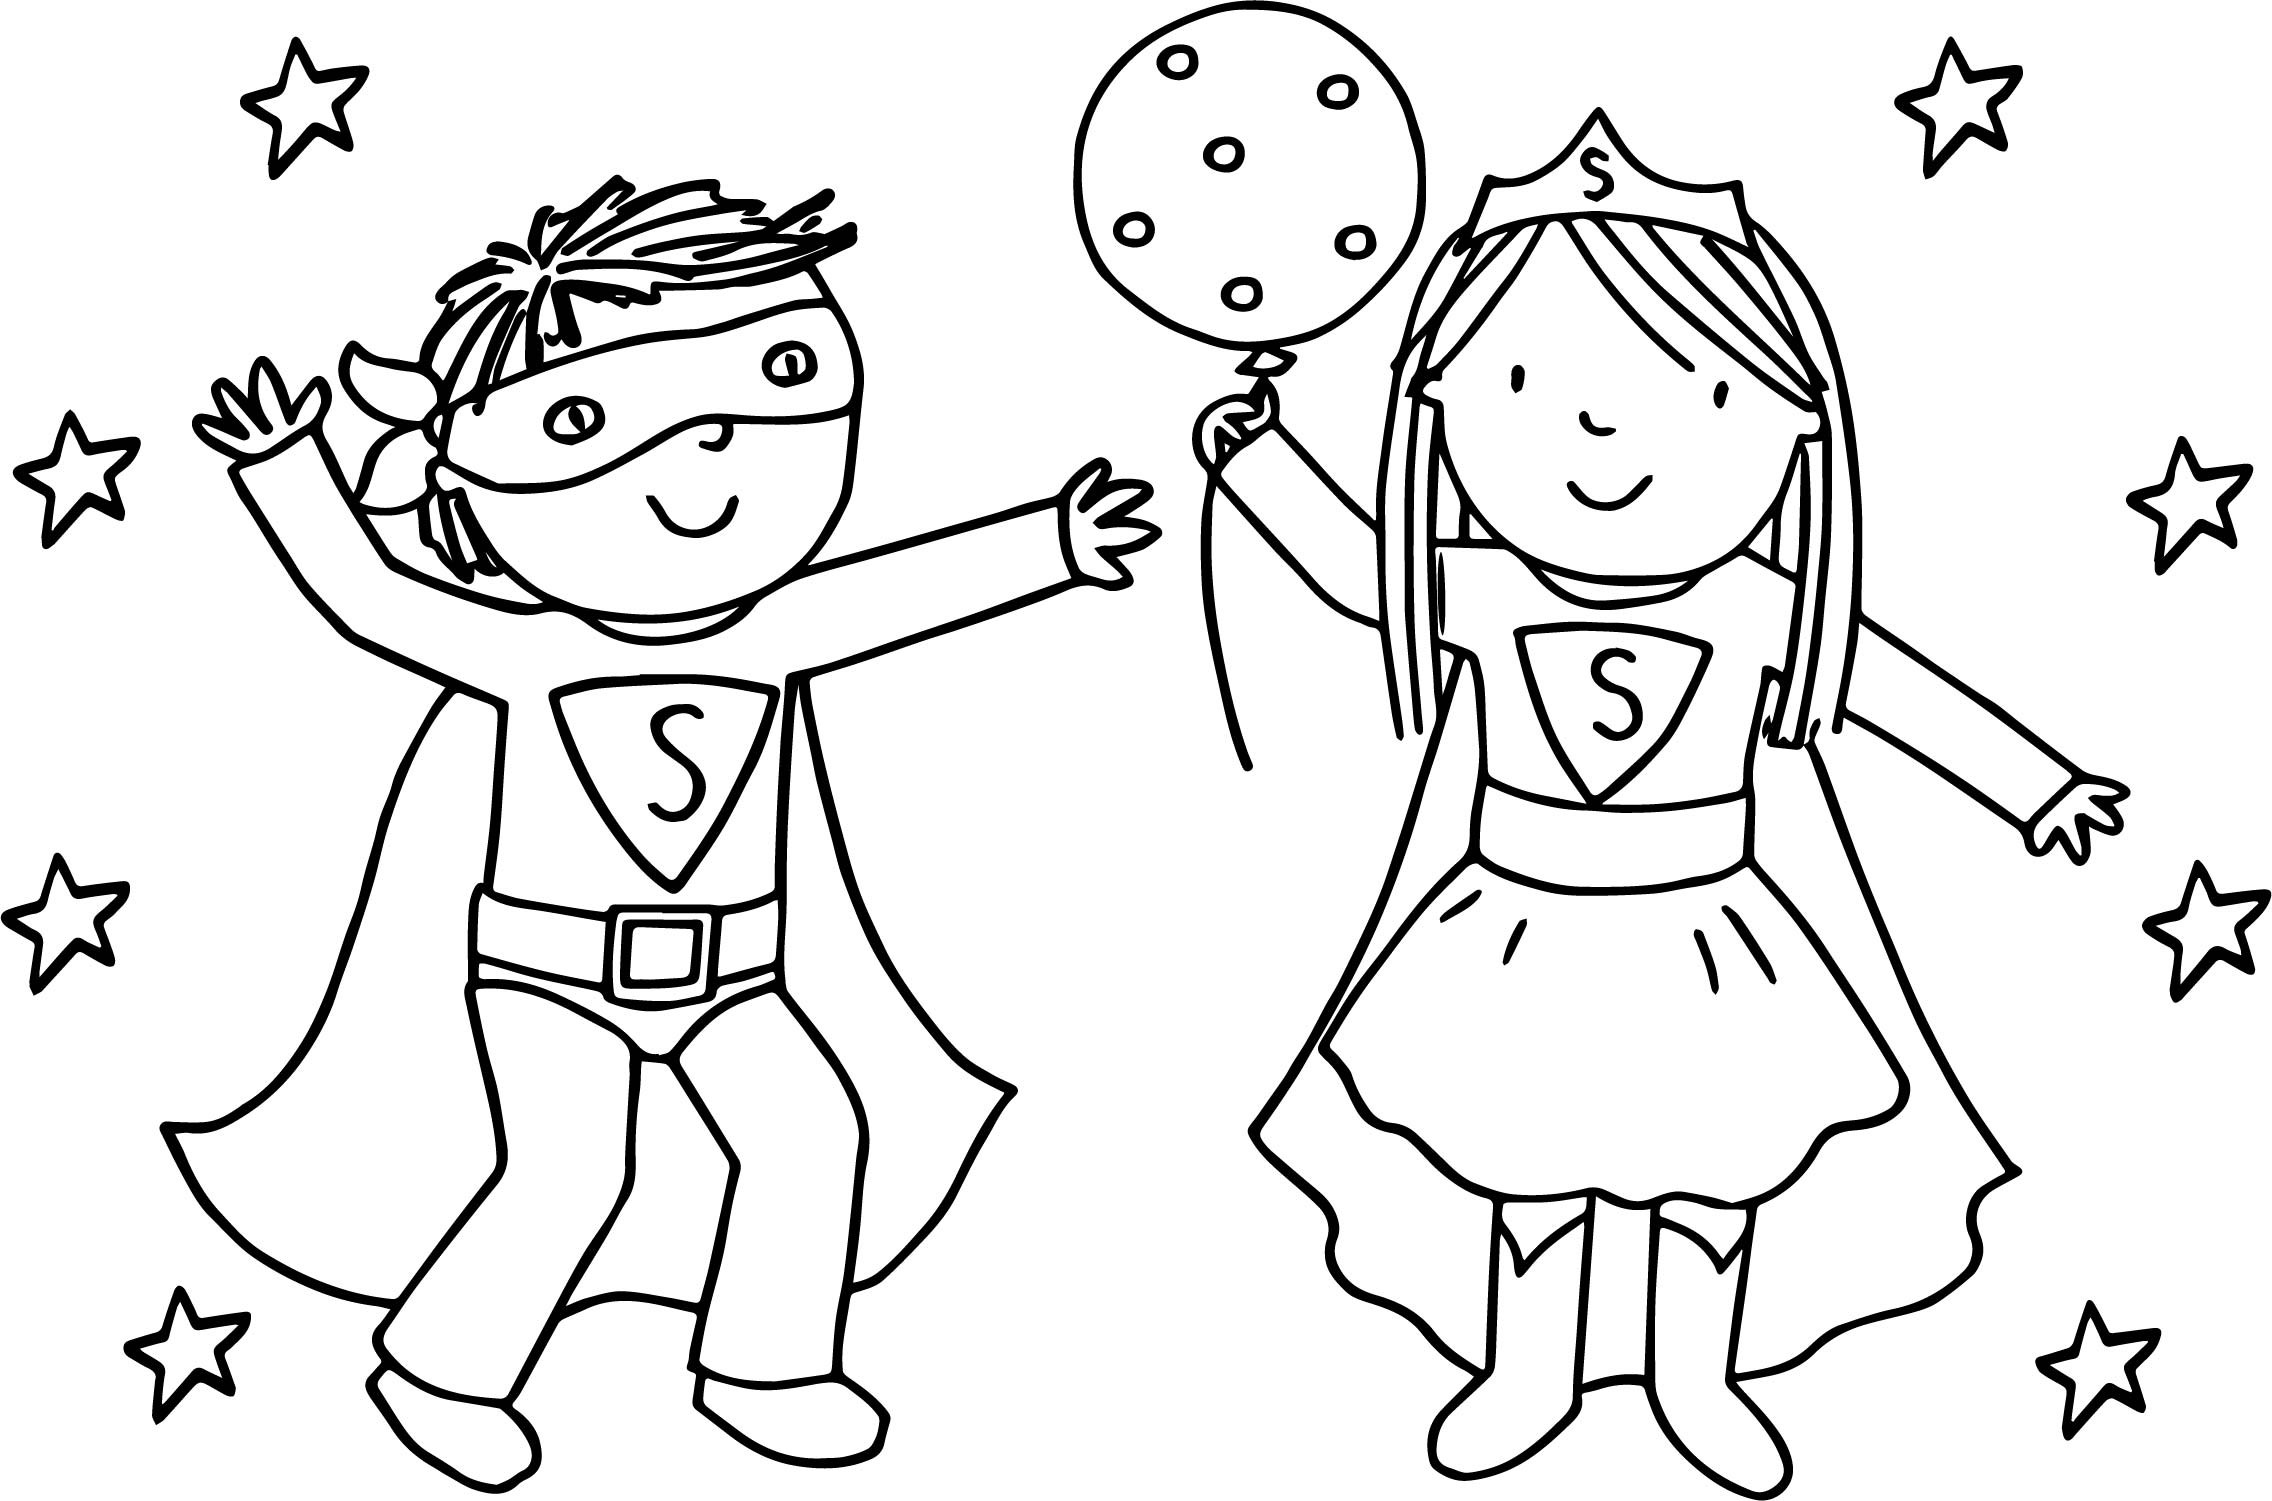 coloring pages girl and boy boys and girls drawing at getdrawings free download boy coloring pages girl and